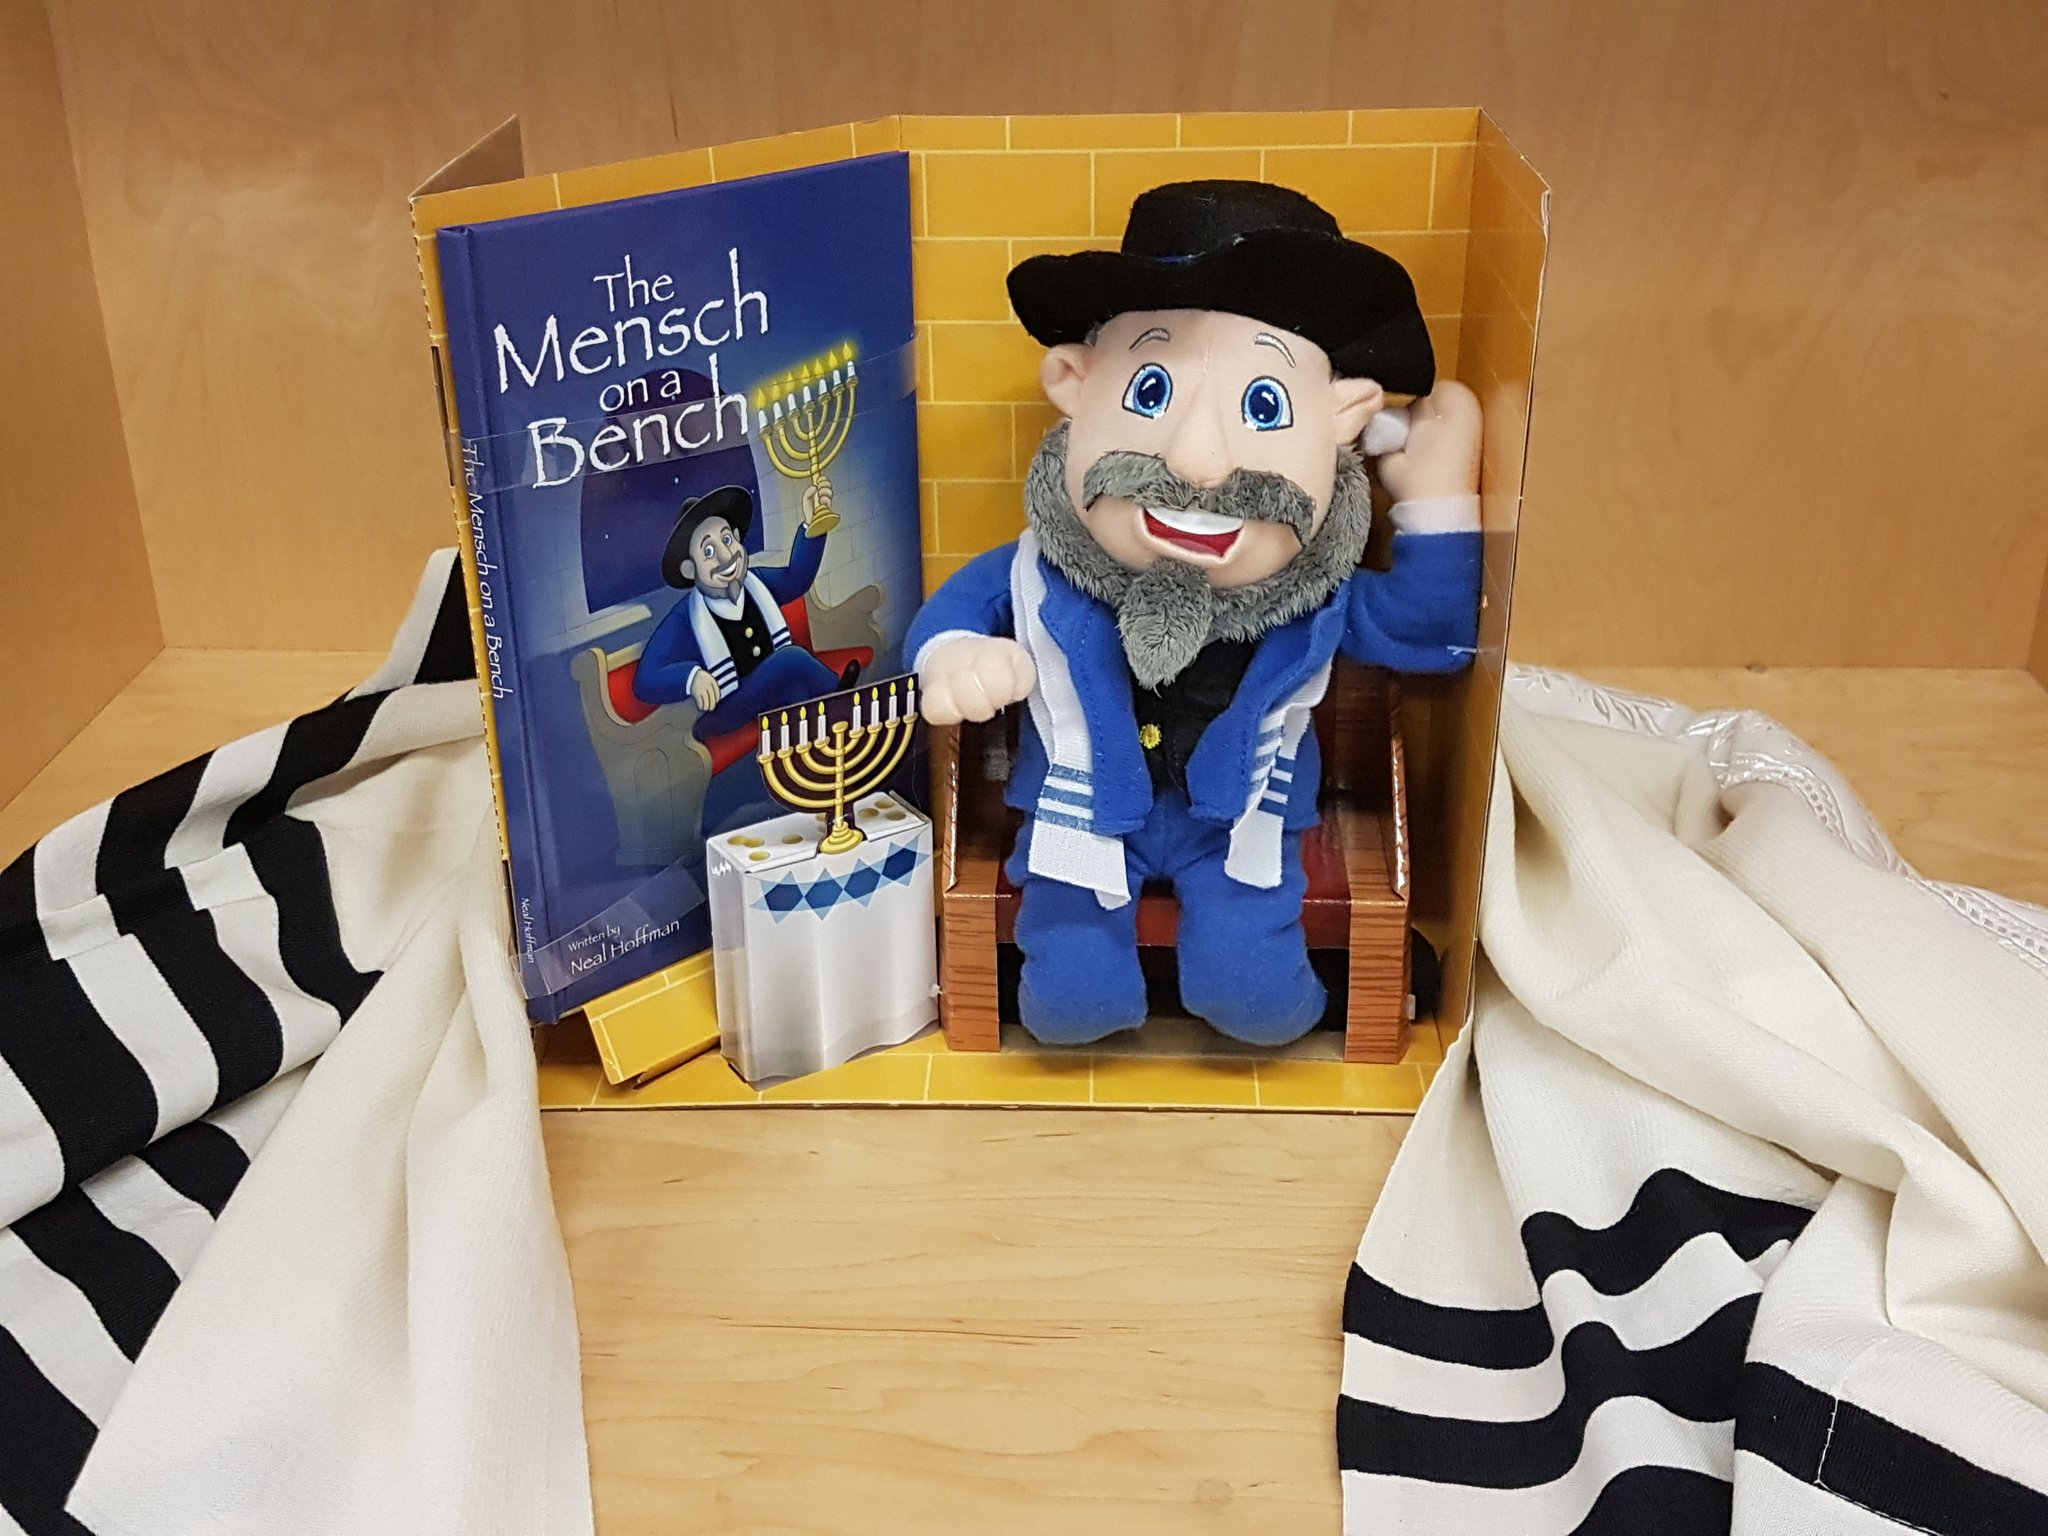 Israel Baseball on Twitter Team Israel mascot The Mensch in a